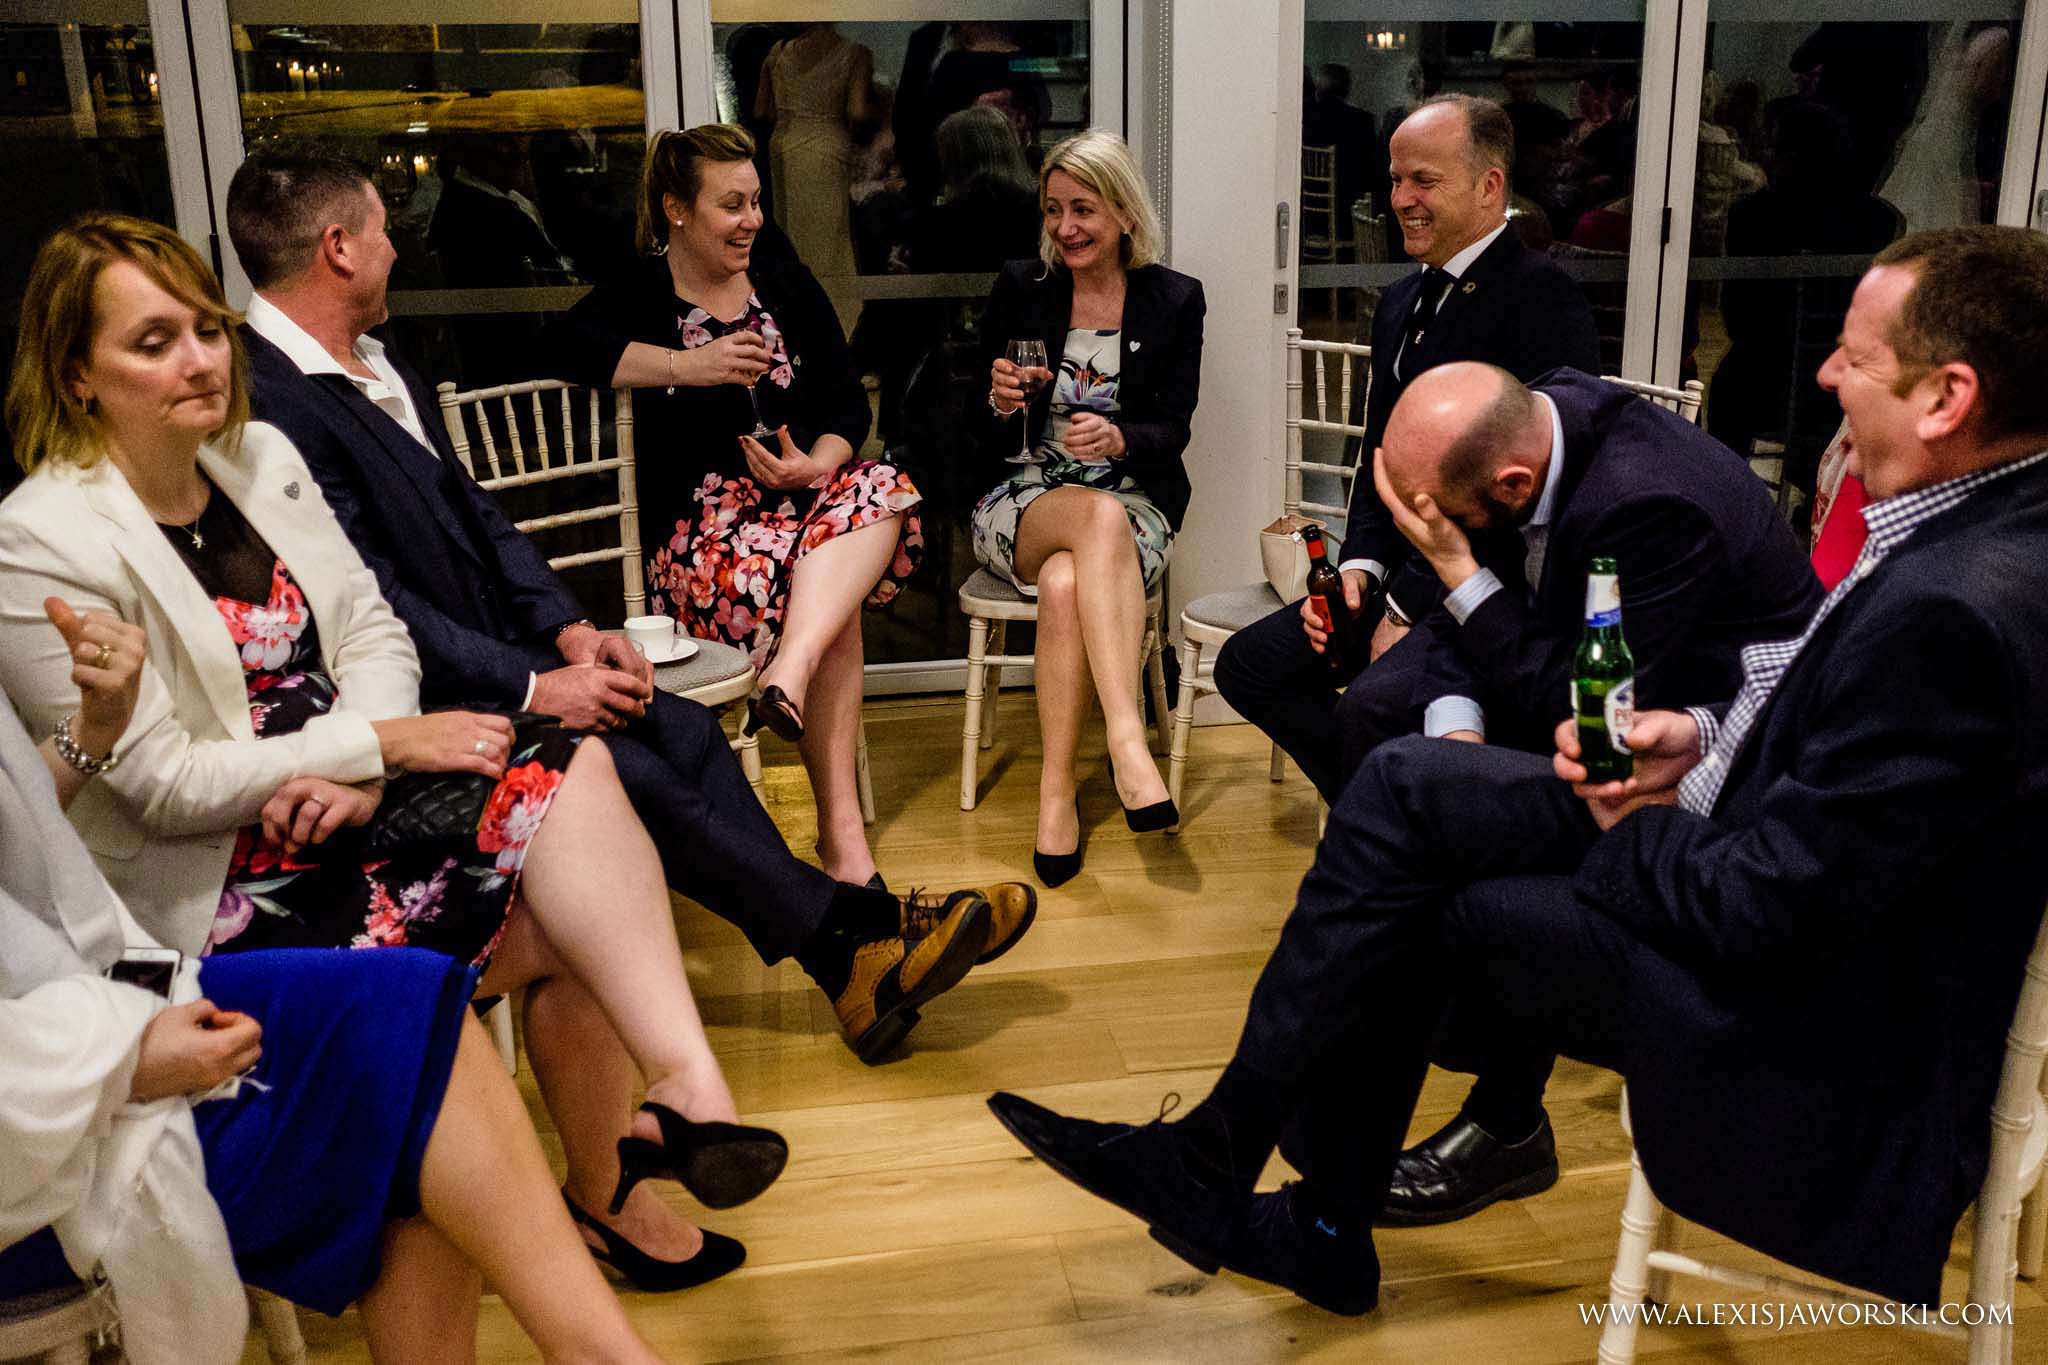 guests chatting and luaghing